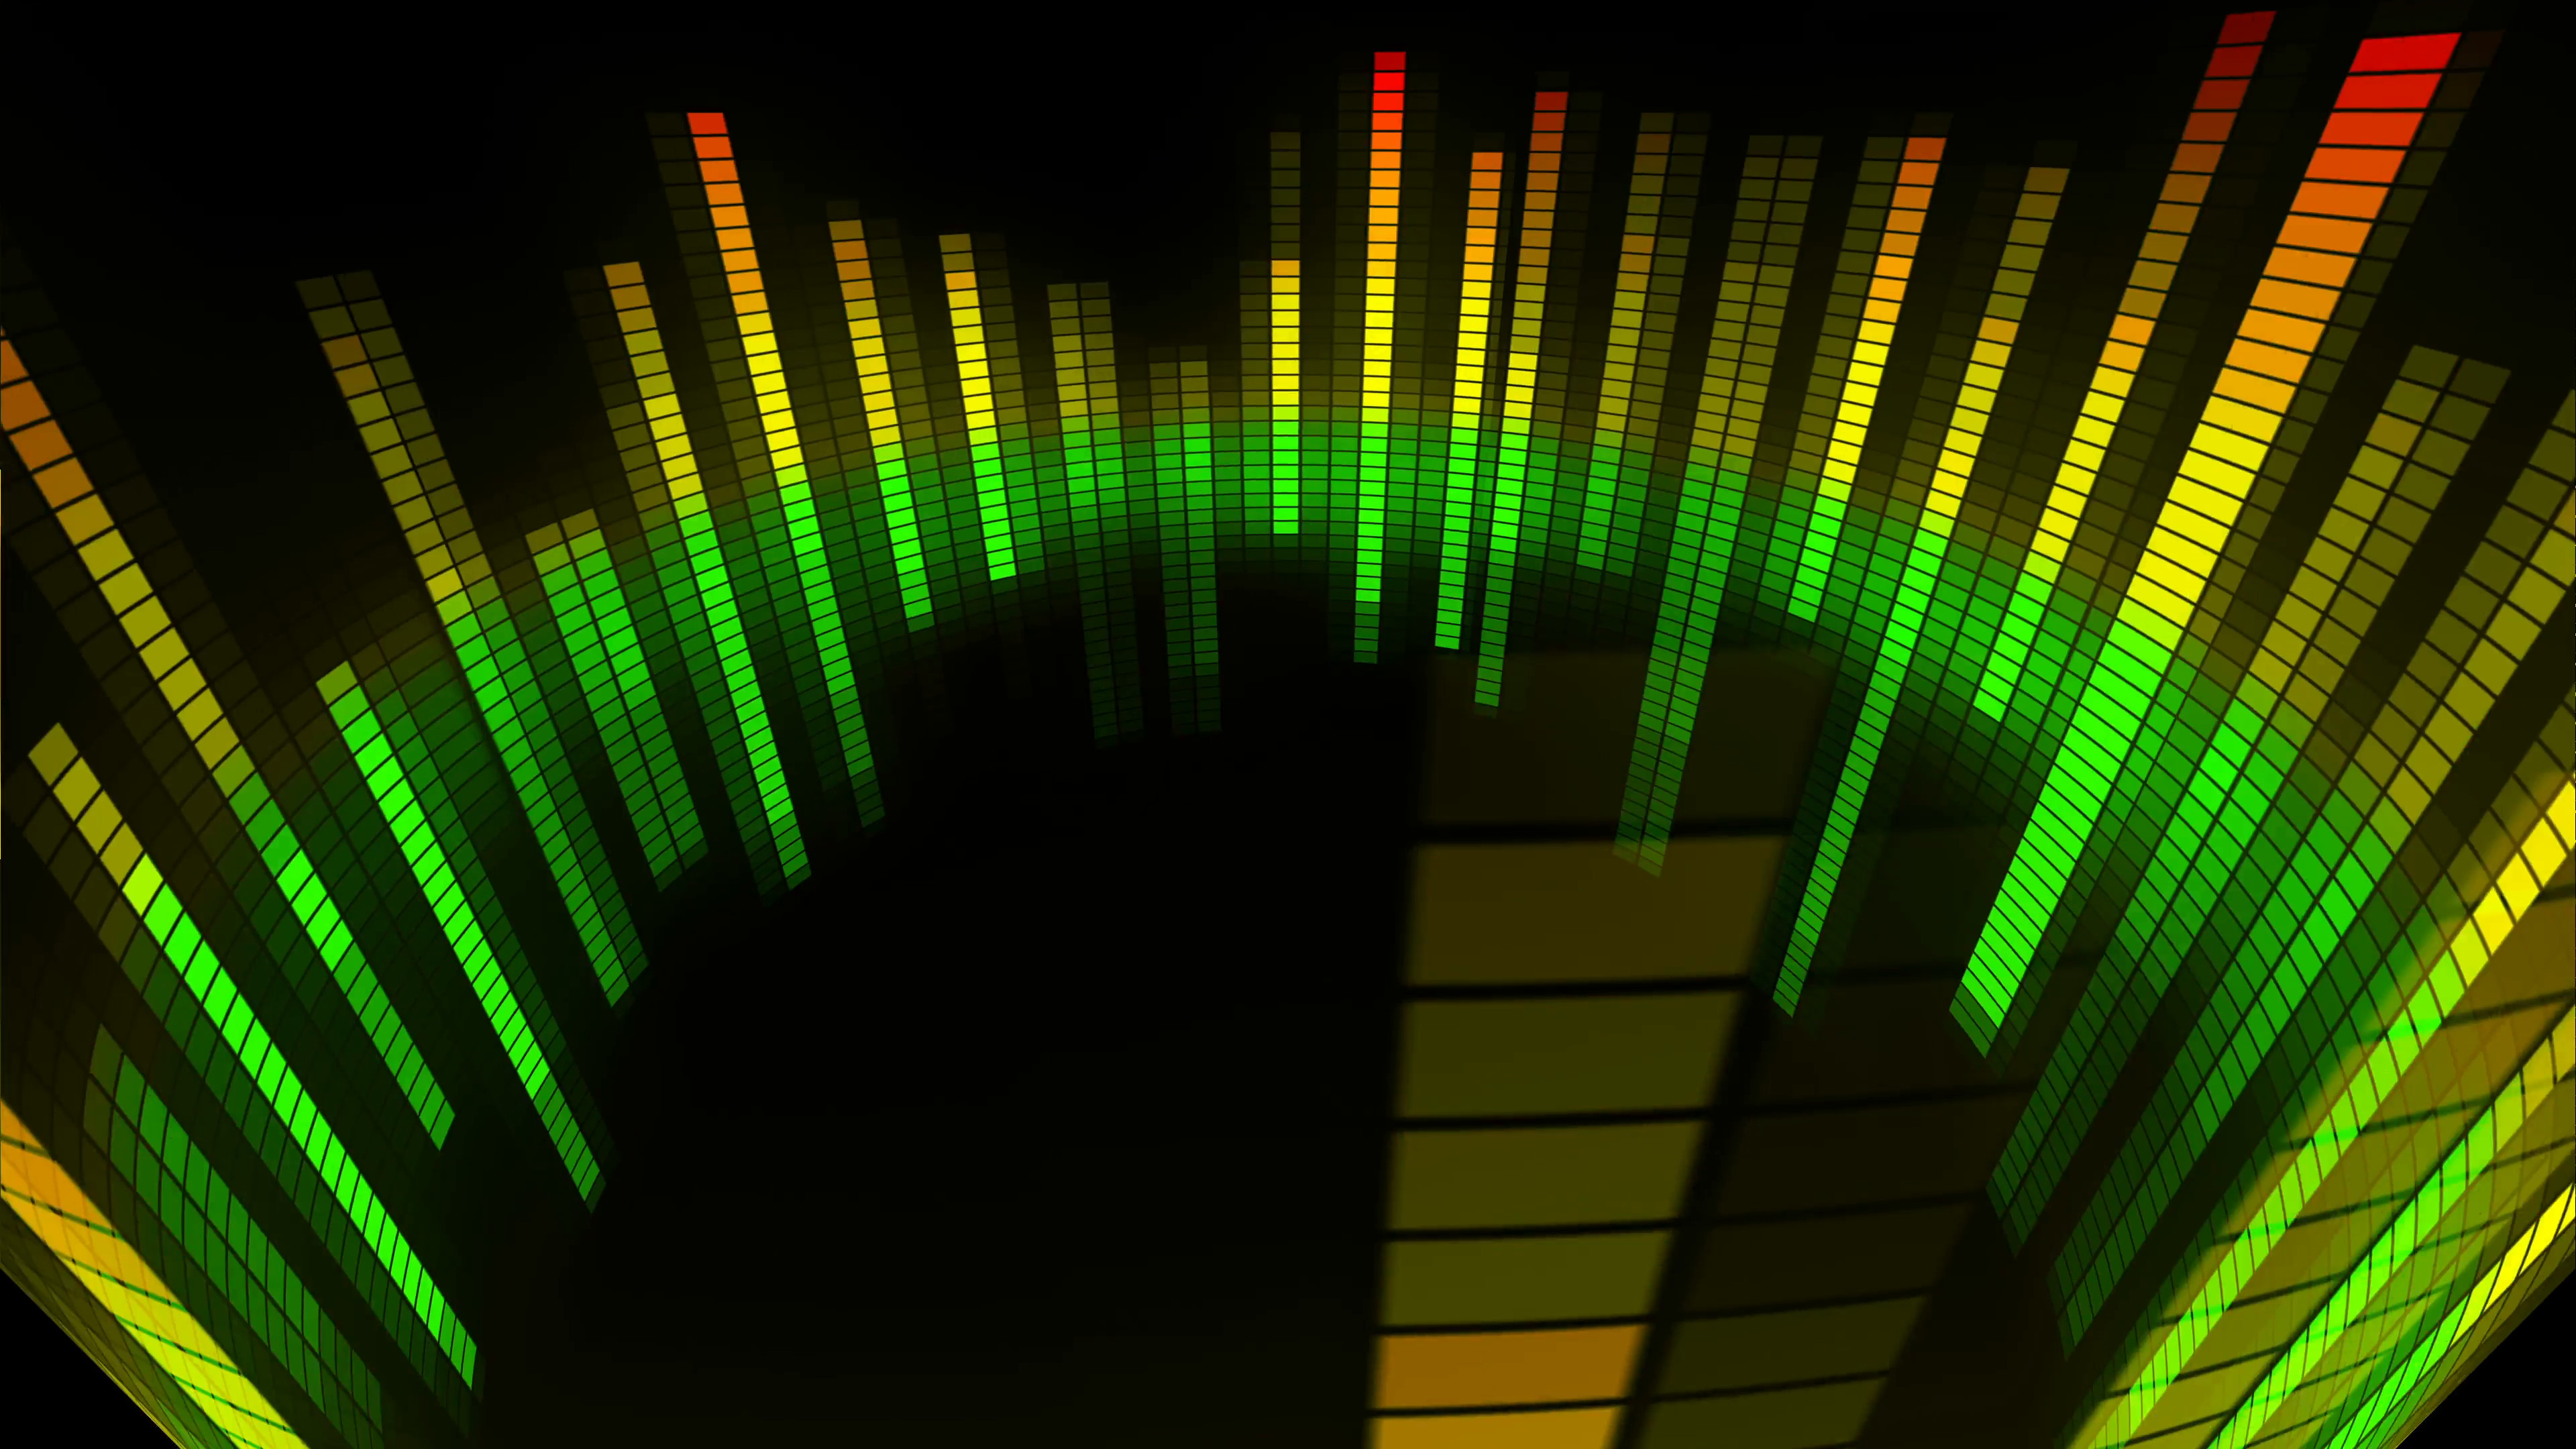 Music Equalizer Wallpaper: Wallpapers That Move With Music (62+ Images